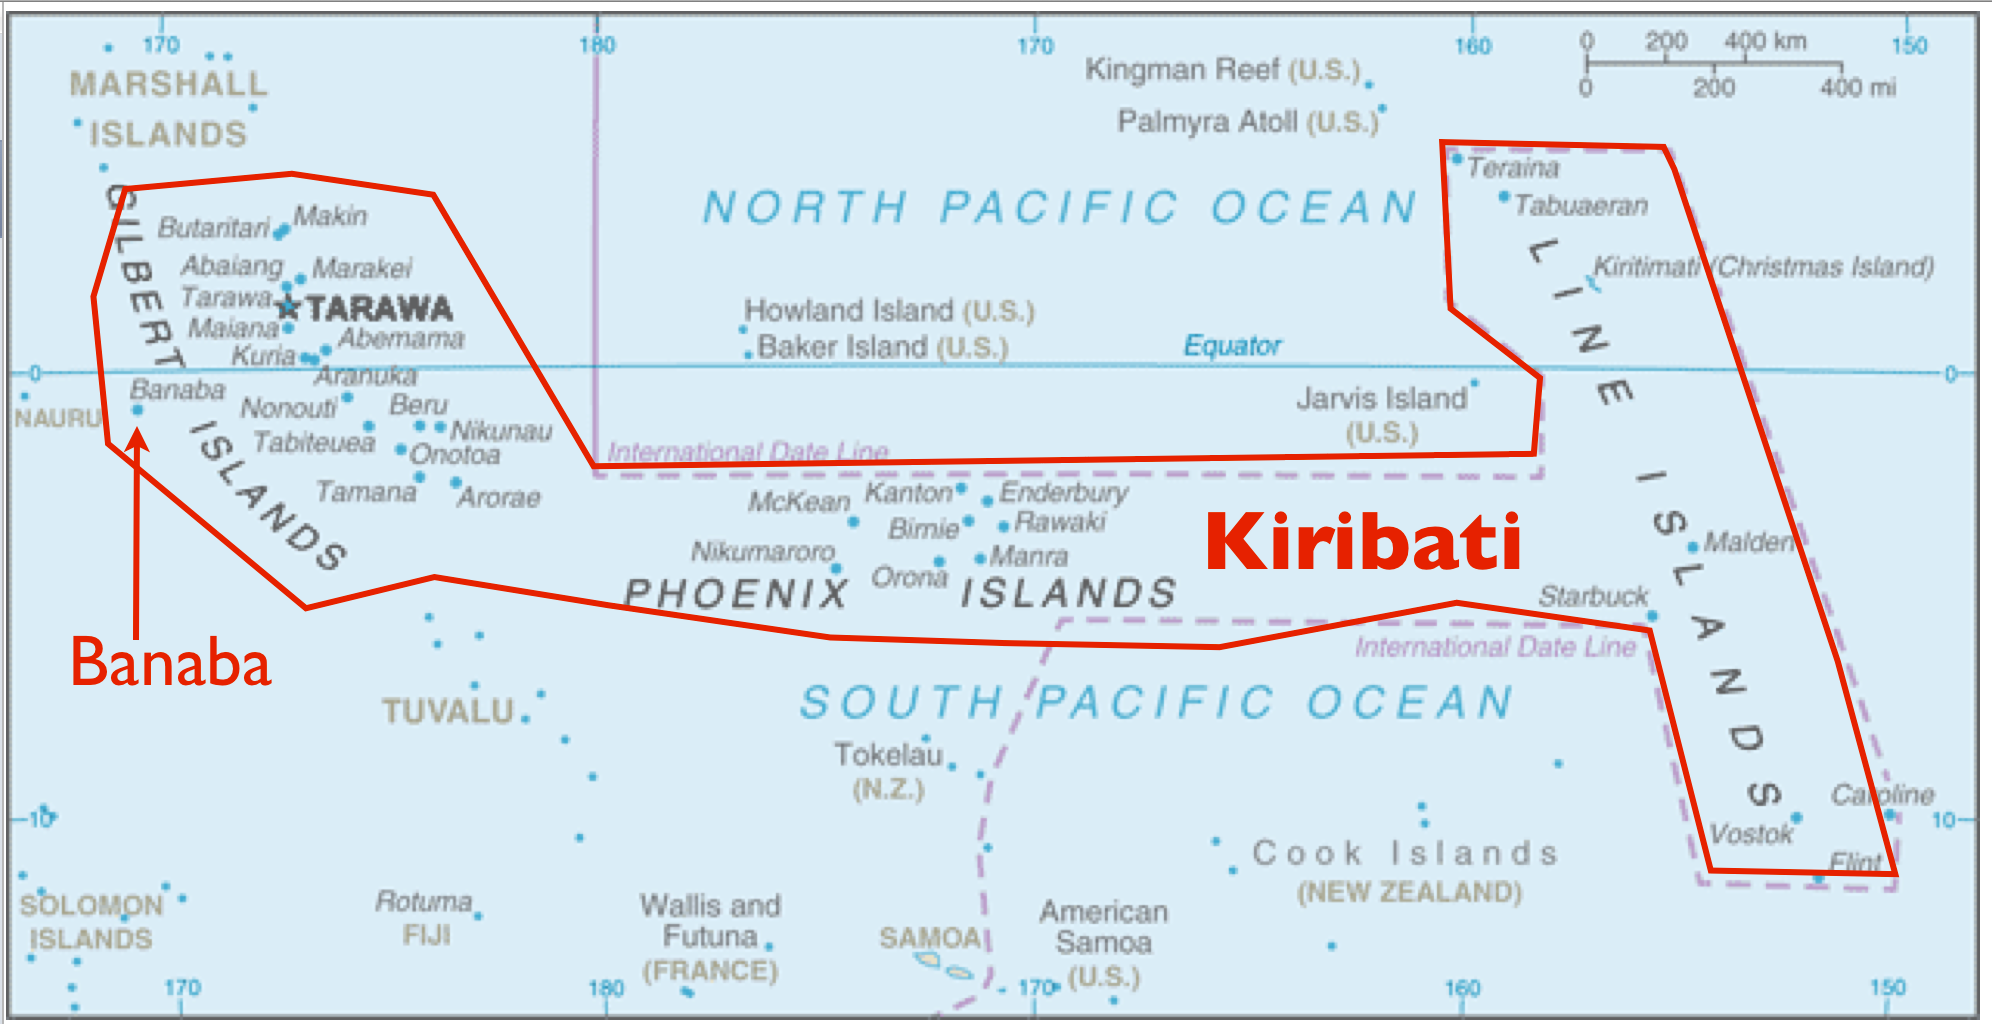 The Anomaly of Banaba Island Part of Kiribati But Administered